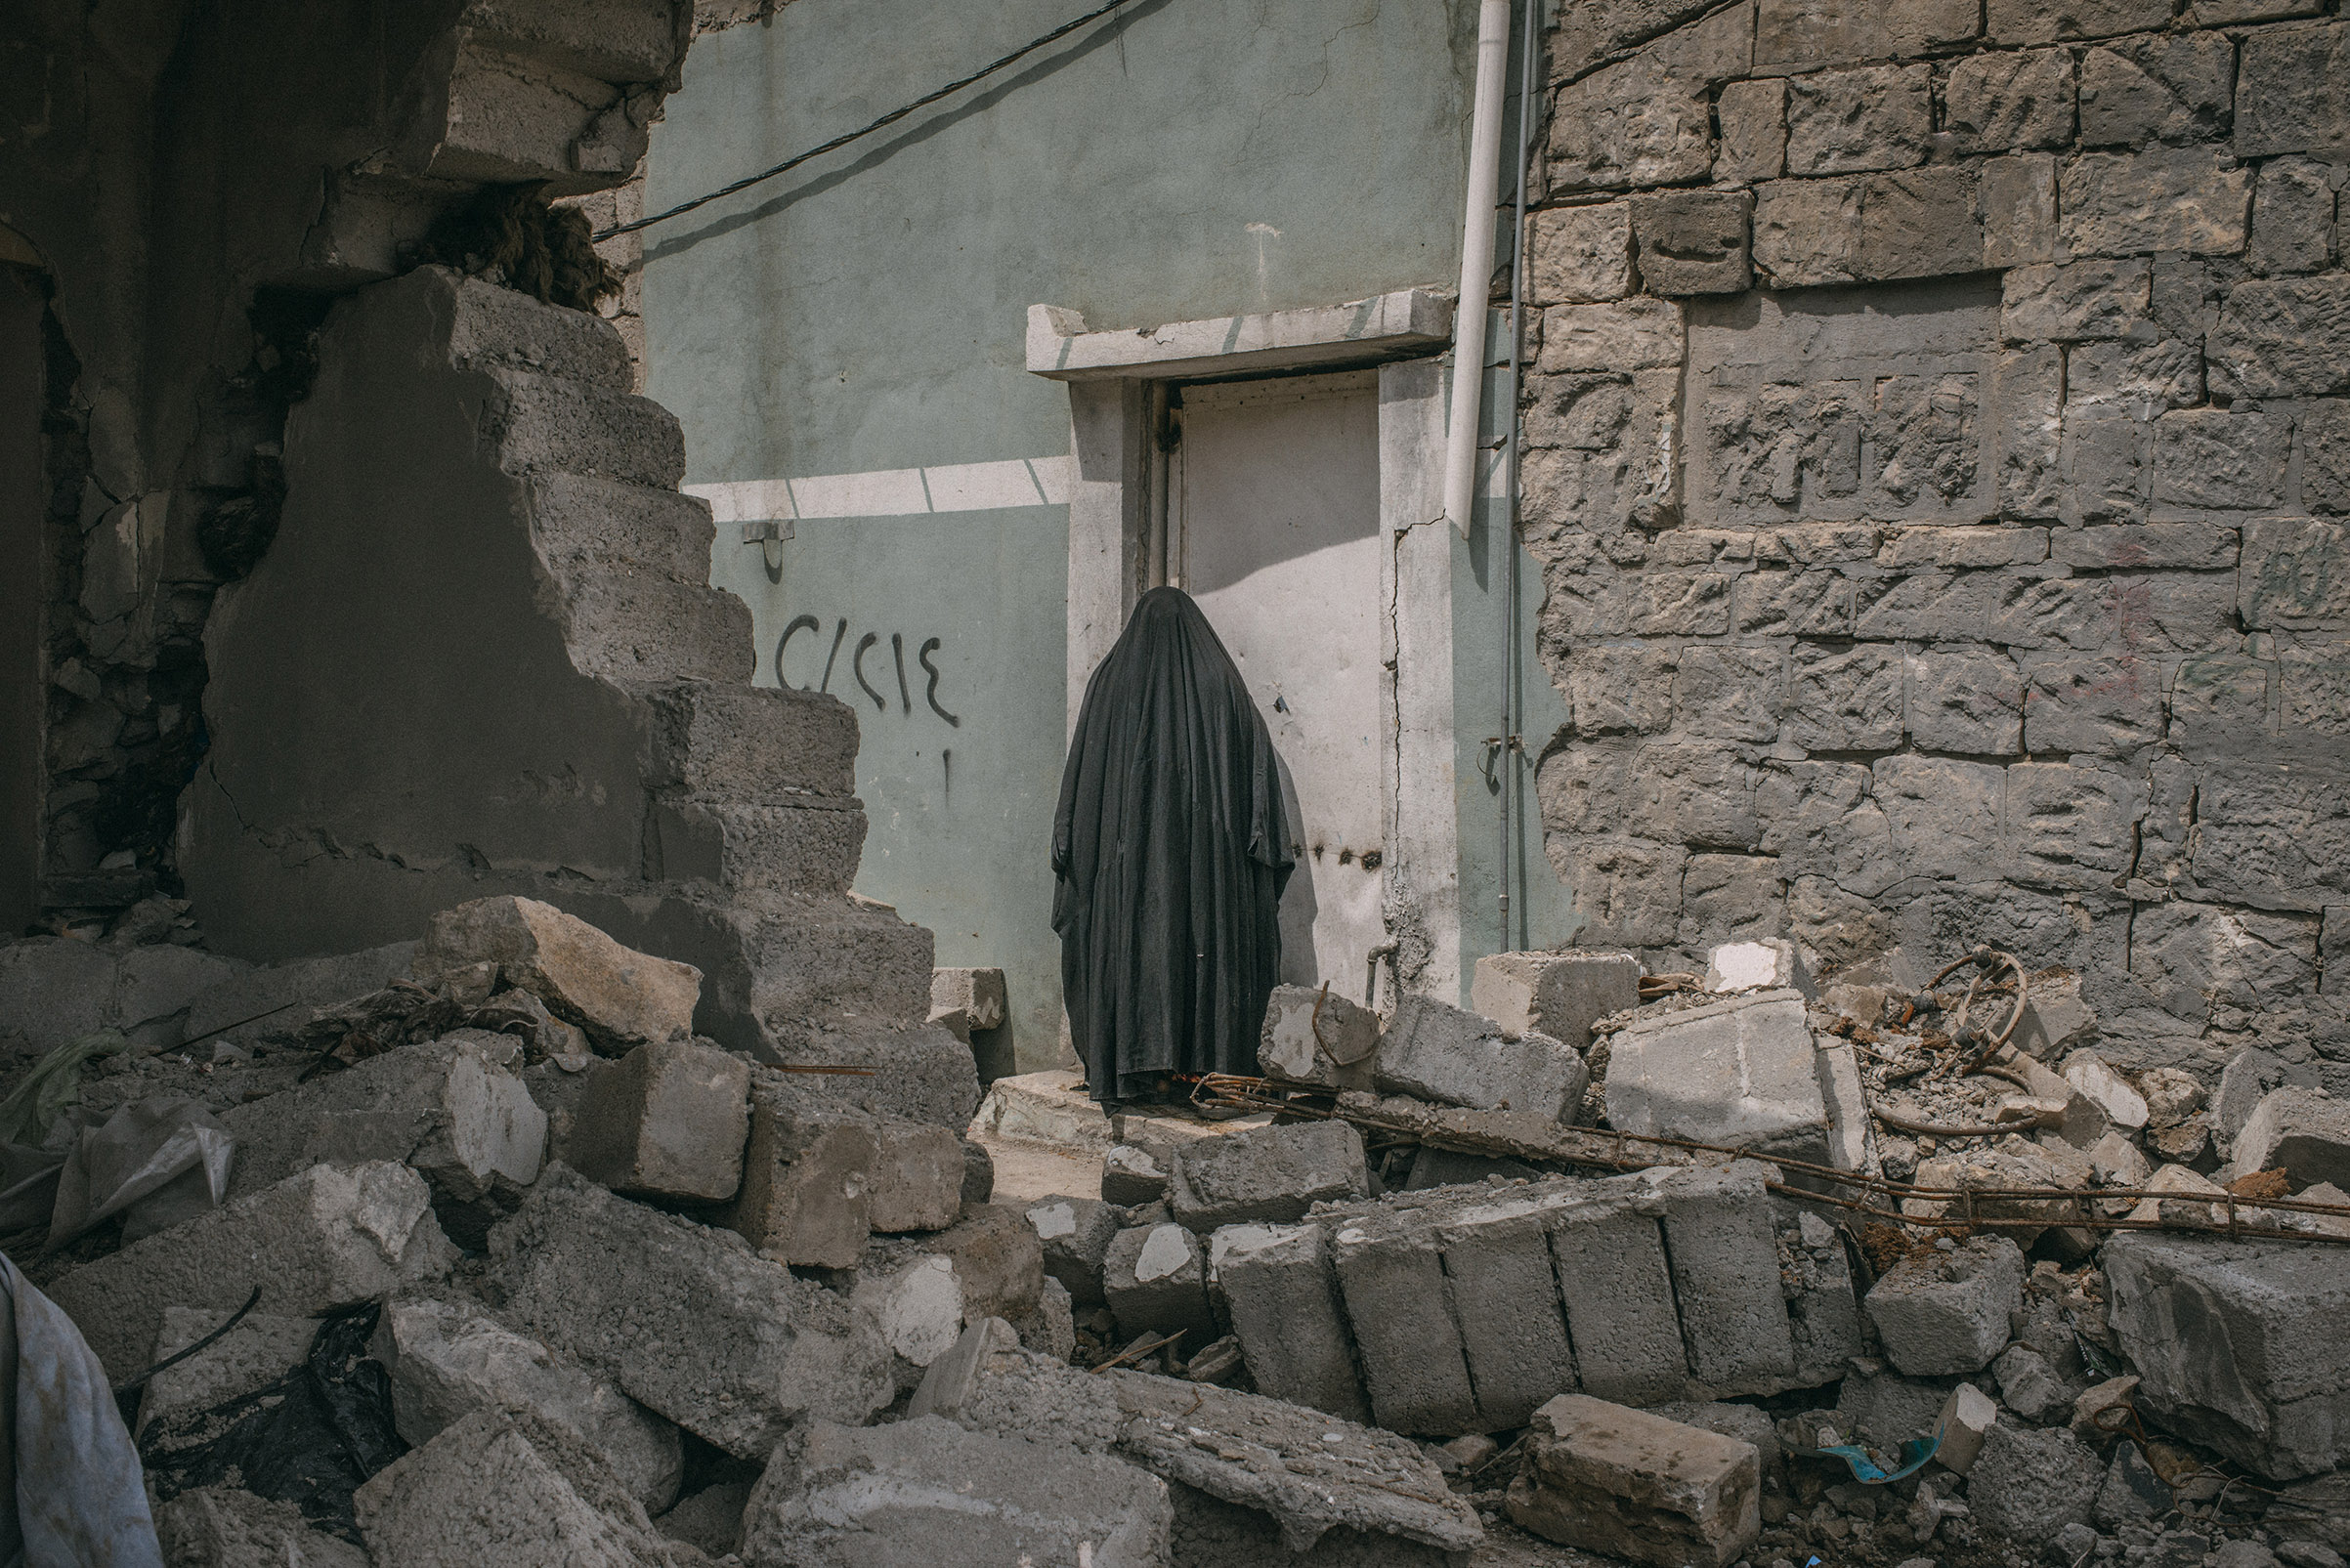 A woman stands among buildings damaged by airstrikes in southwest Mosul on April 3, 2017